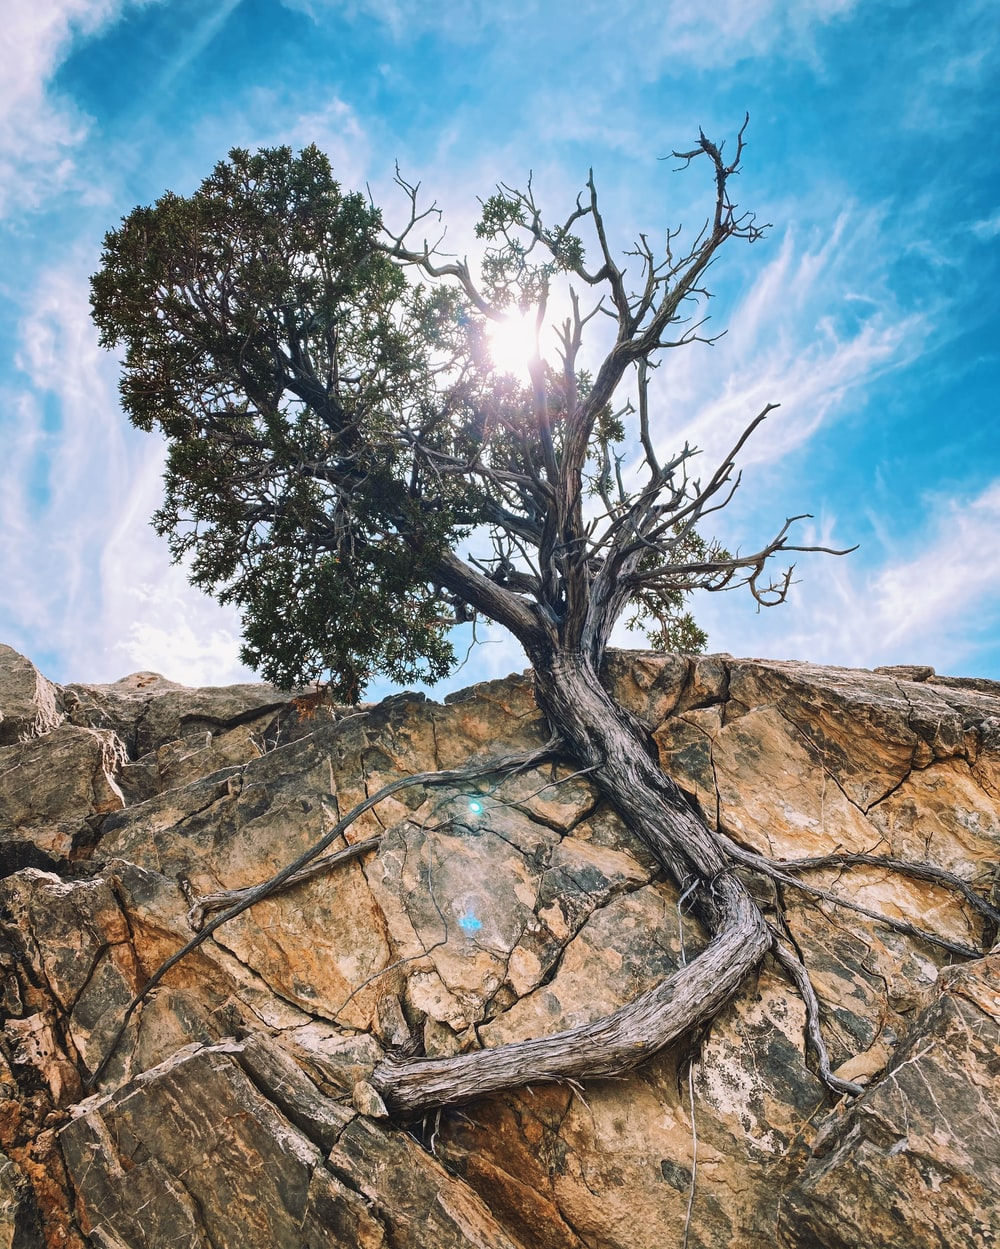 green tree on brown rock formation under blue sky and white clouds during daytime